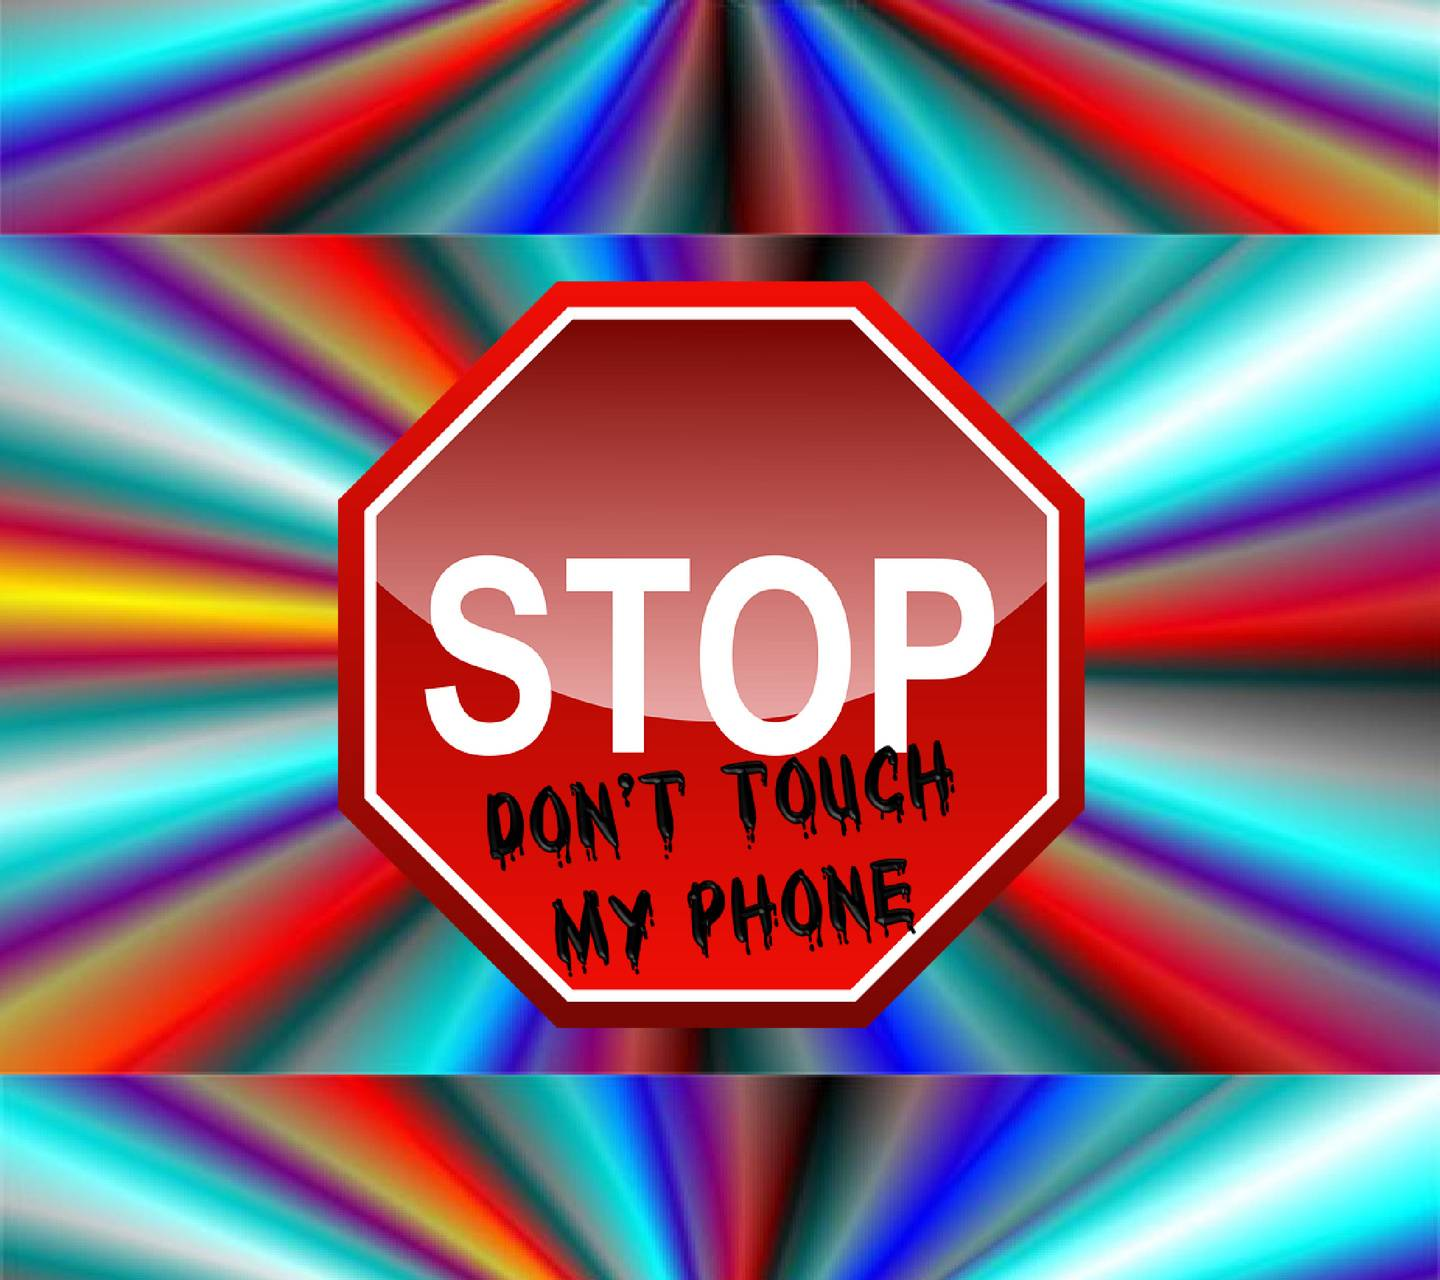 STOP dont touch